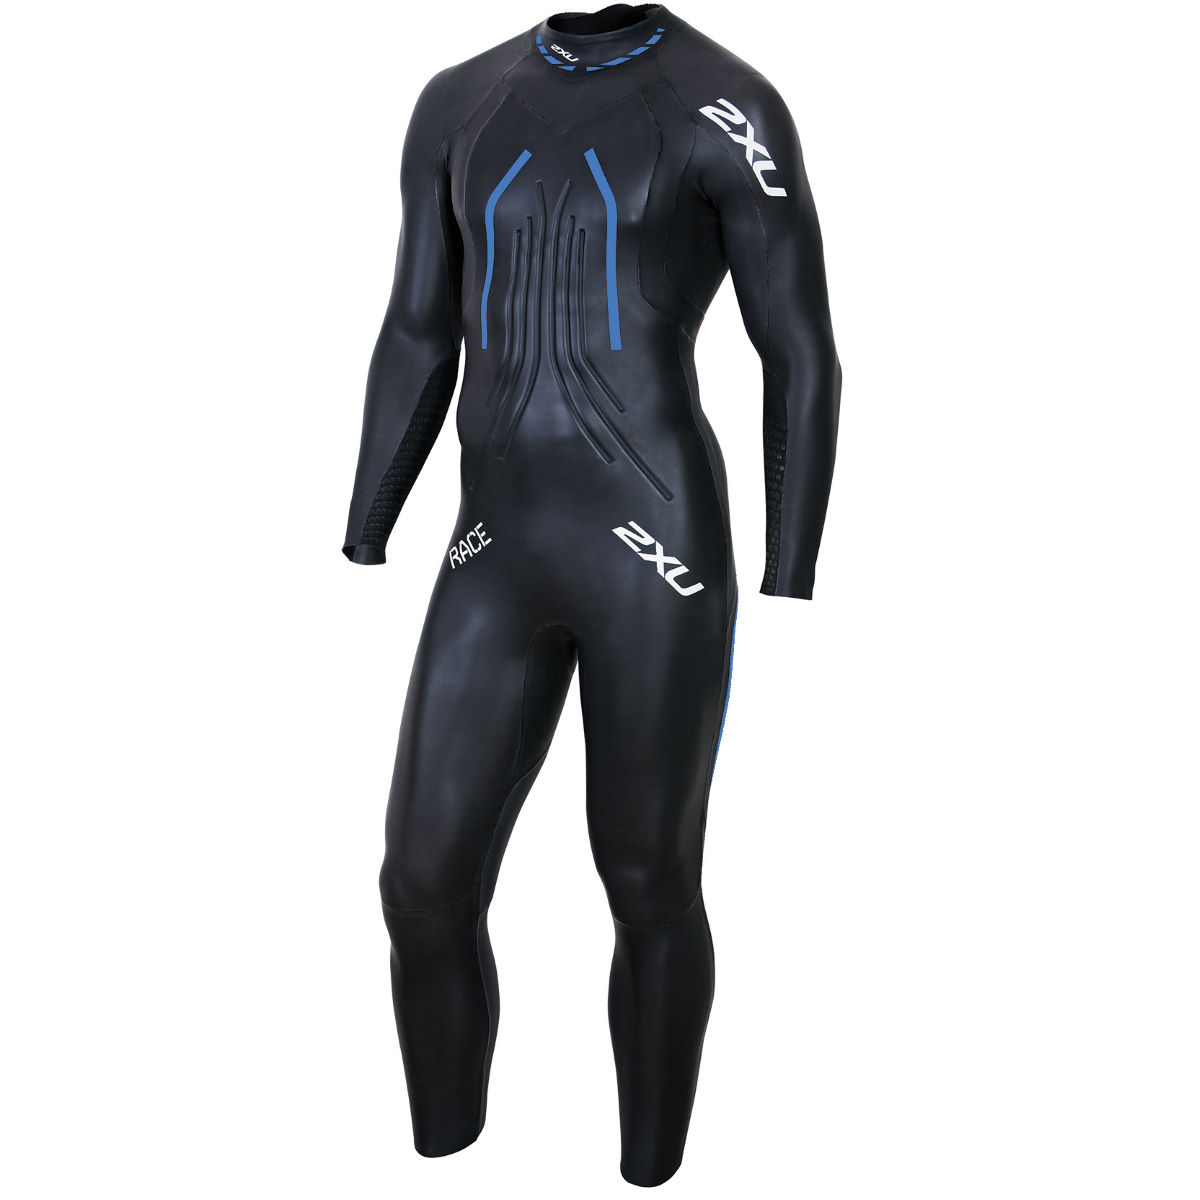 Combinaison 2XU Race (exclusivité Wiggle) - Medium/Small